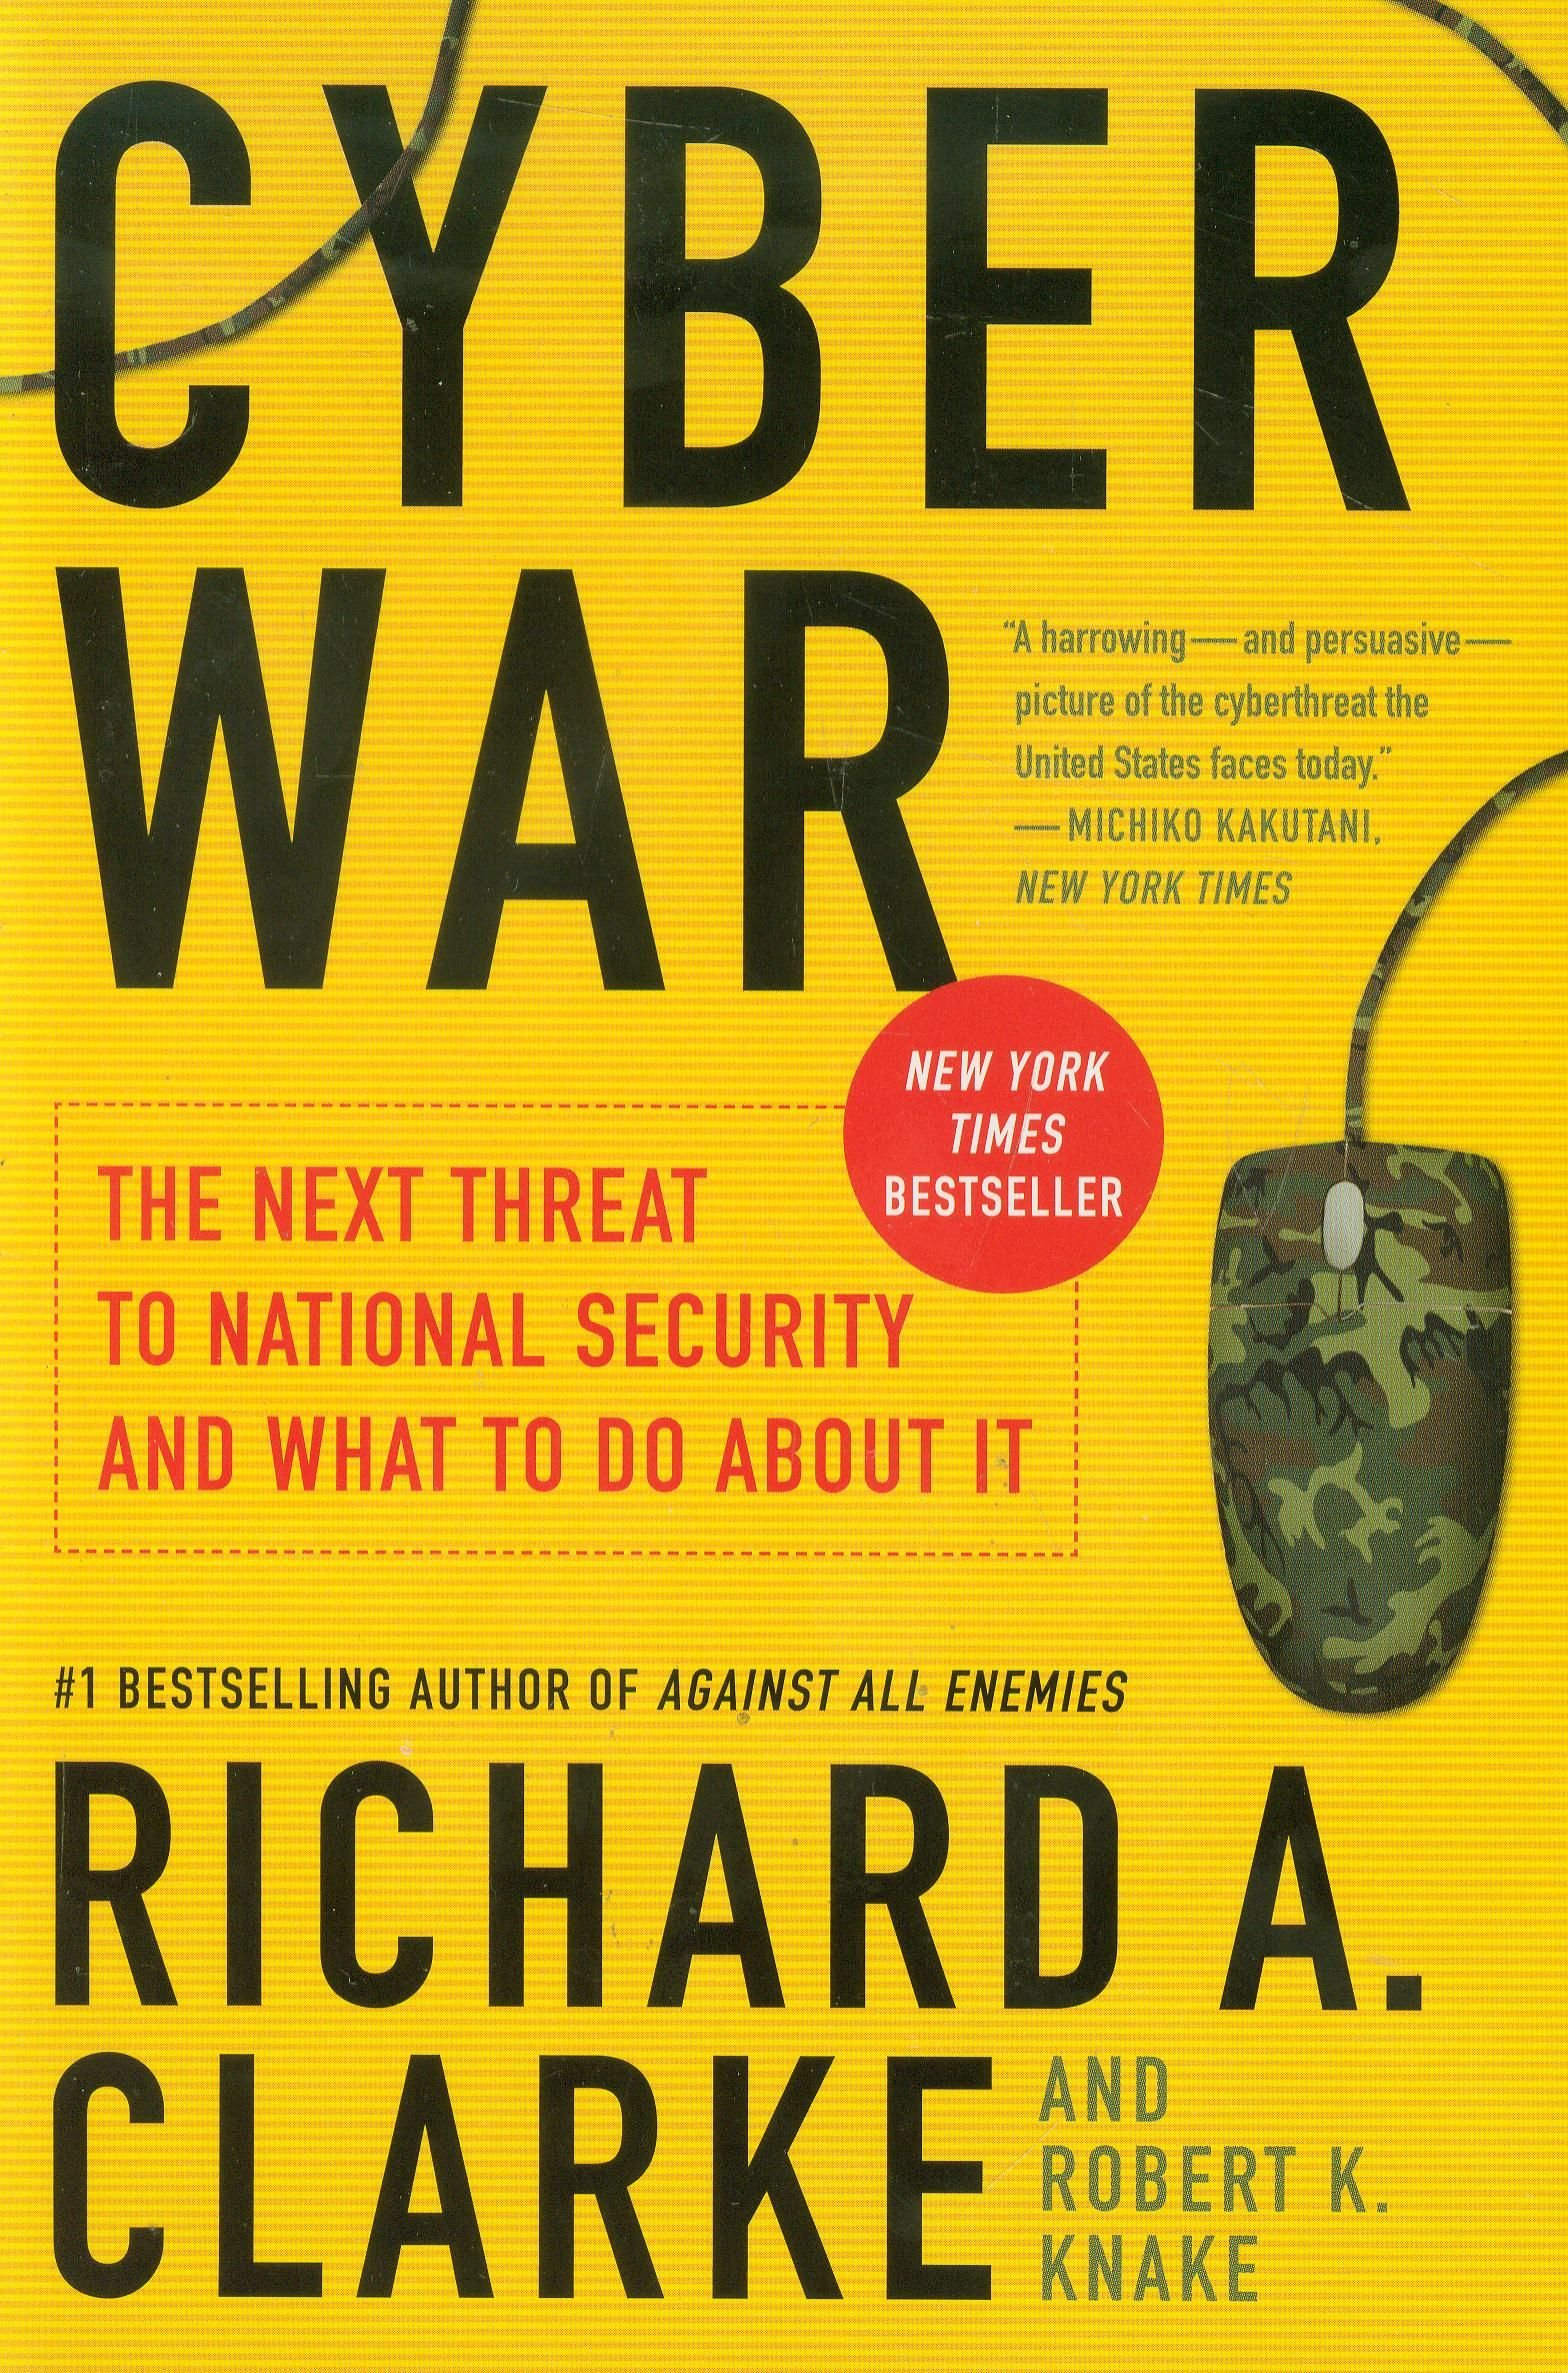 Is Cyberwarfare a Serious Problem? Richard Clarke